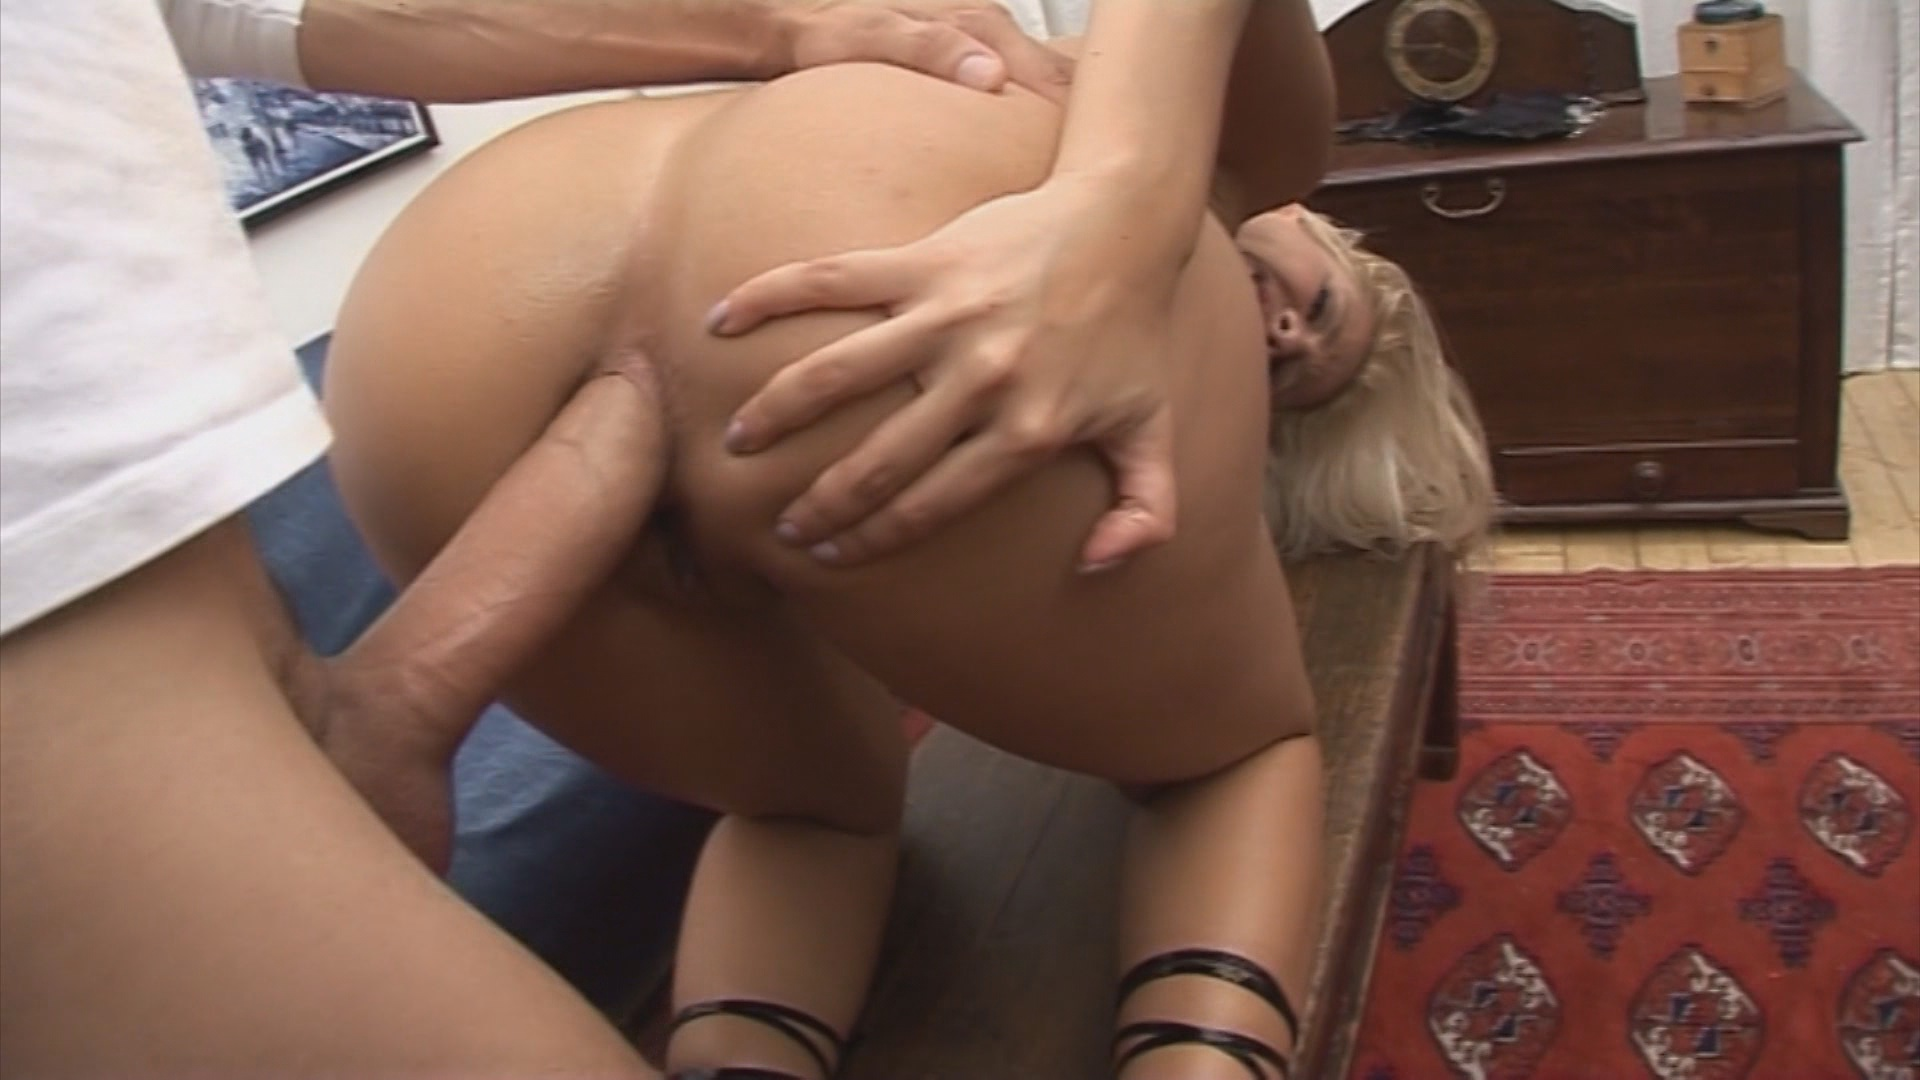 Dirty Anal MILFS 2 xvideos176886